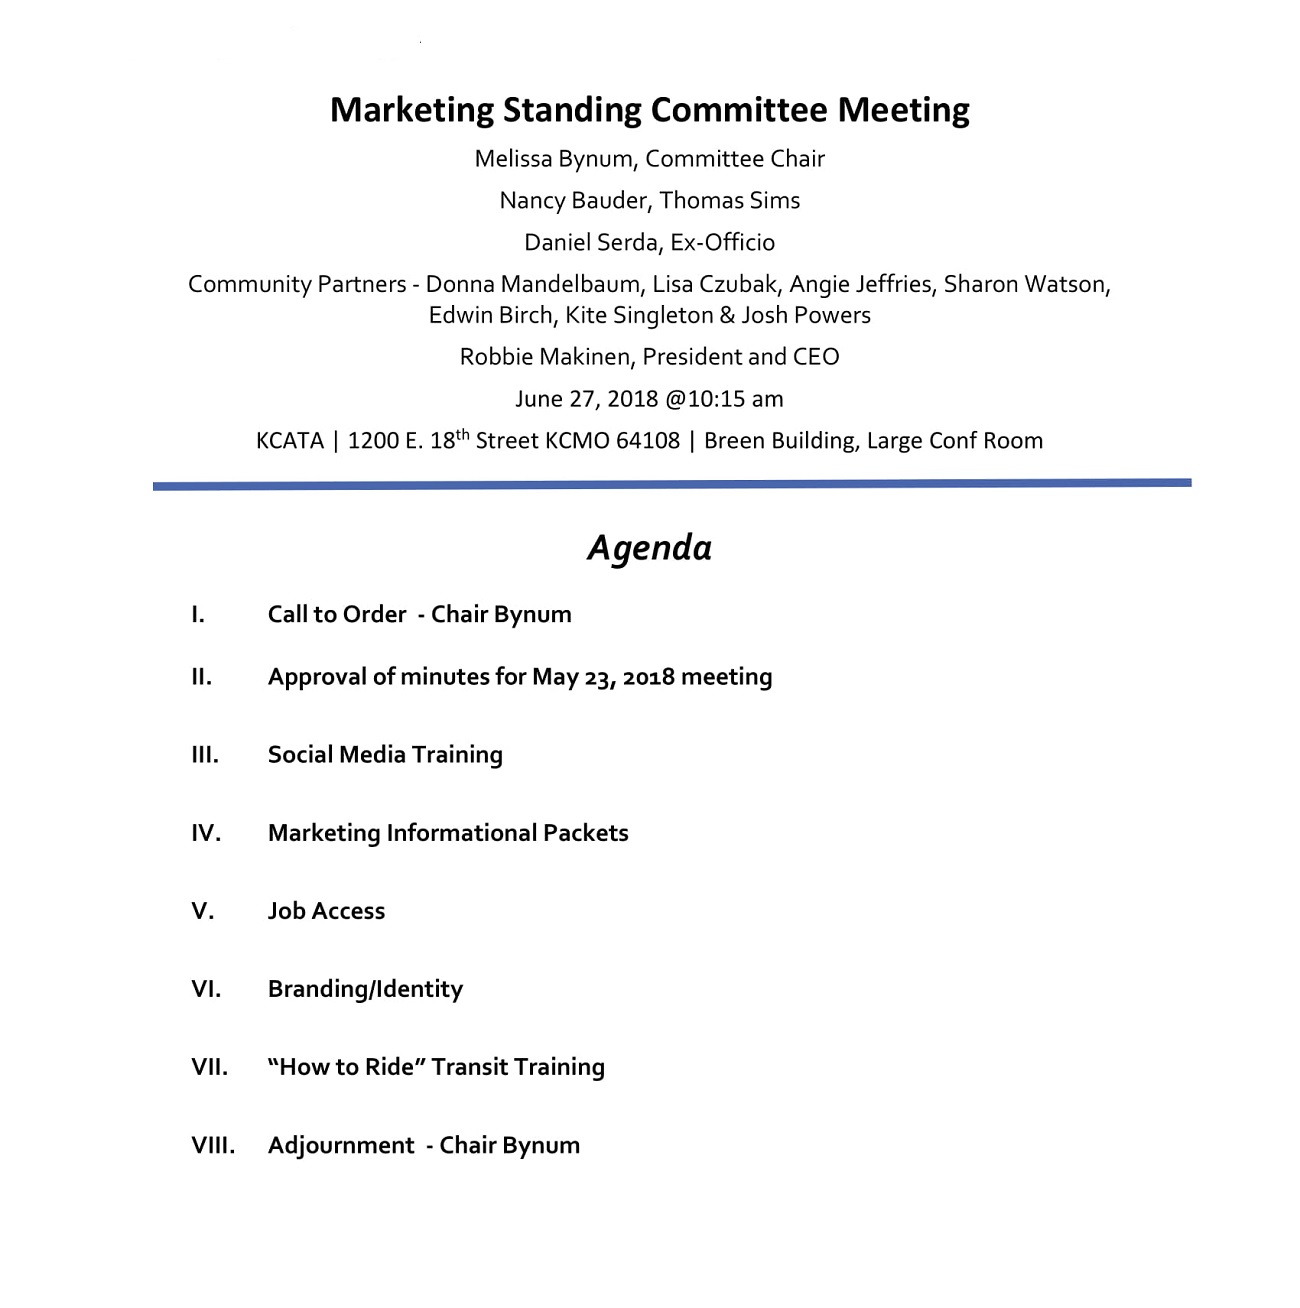 Marketing Standing Committee Meeting Agenda Sample Content Social Media Template Of  Example Full